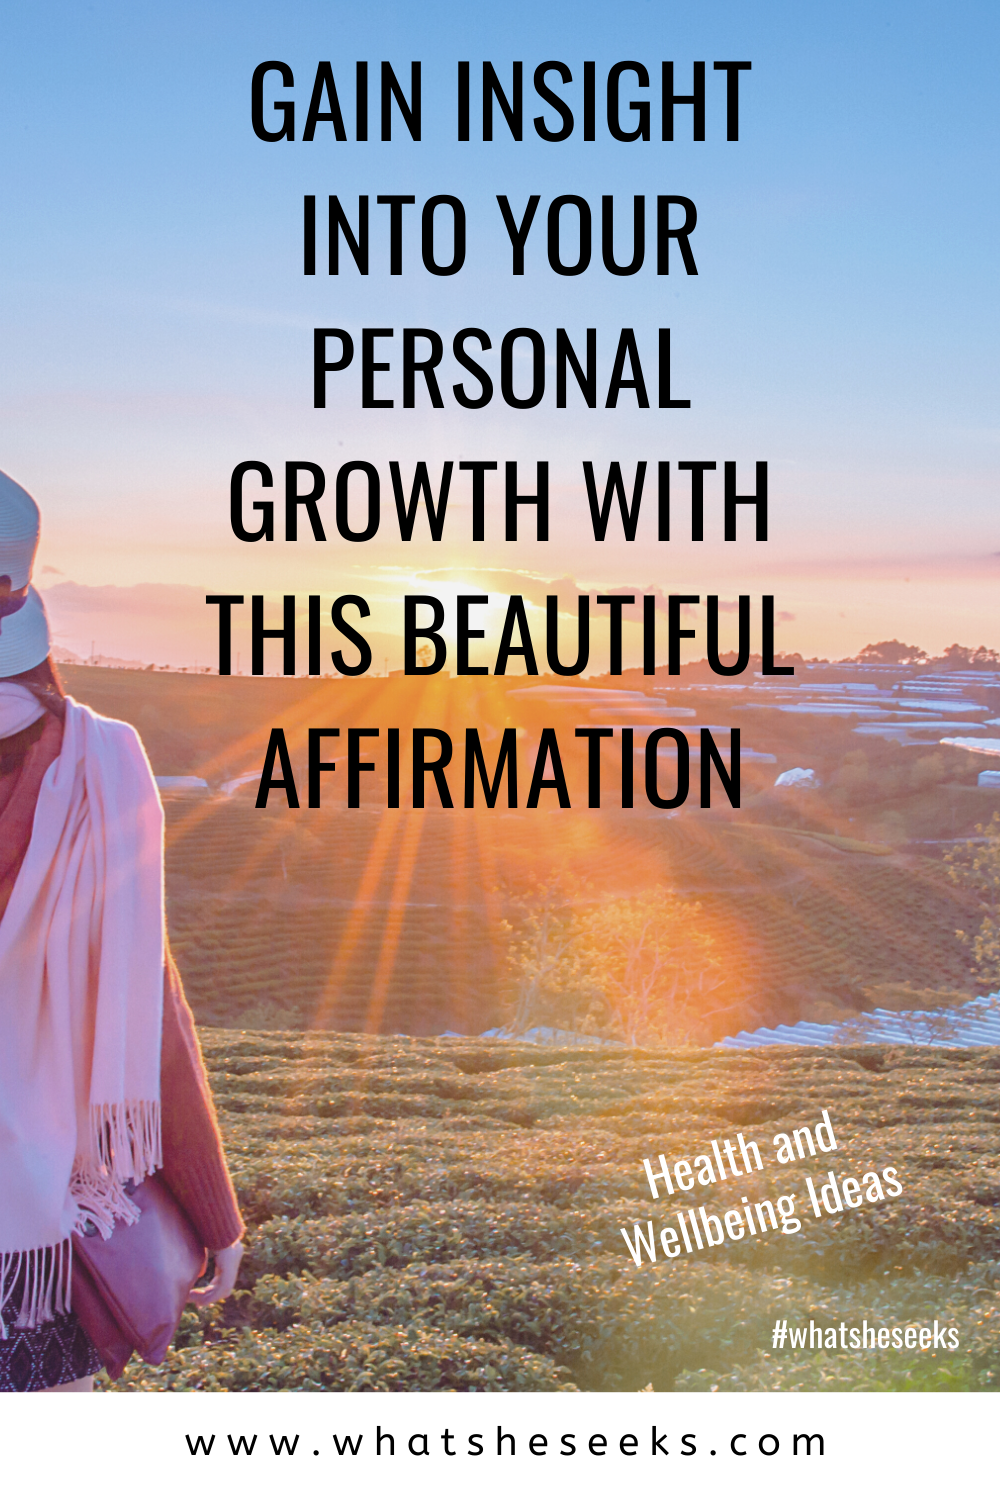 Do need to improve or strengthen your personal growth? Are you suffering with low self esteem? This positive affirmation will enable you to practice self-love and find your inner strength. #whatsheseeks